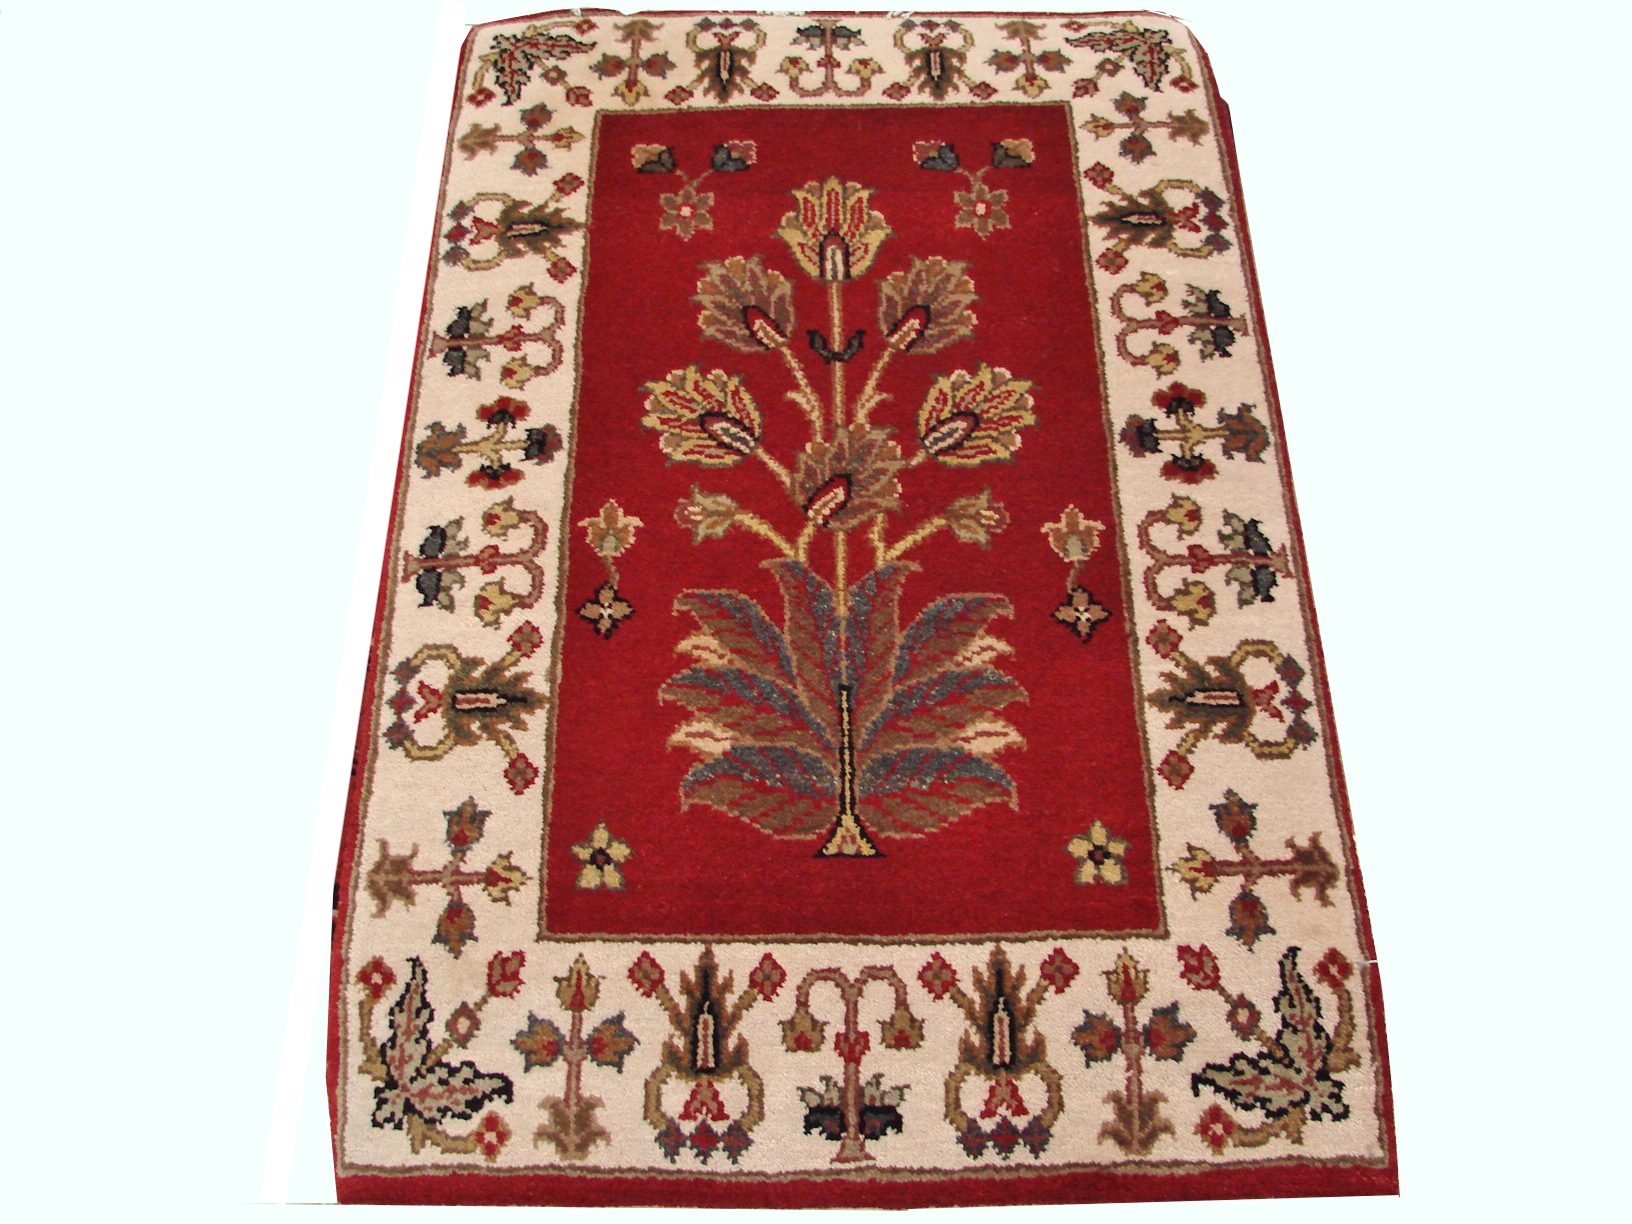 2X3 Jaipur Hand Knotted Wool Area Rug - MR4684